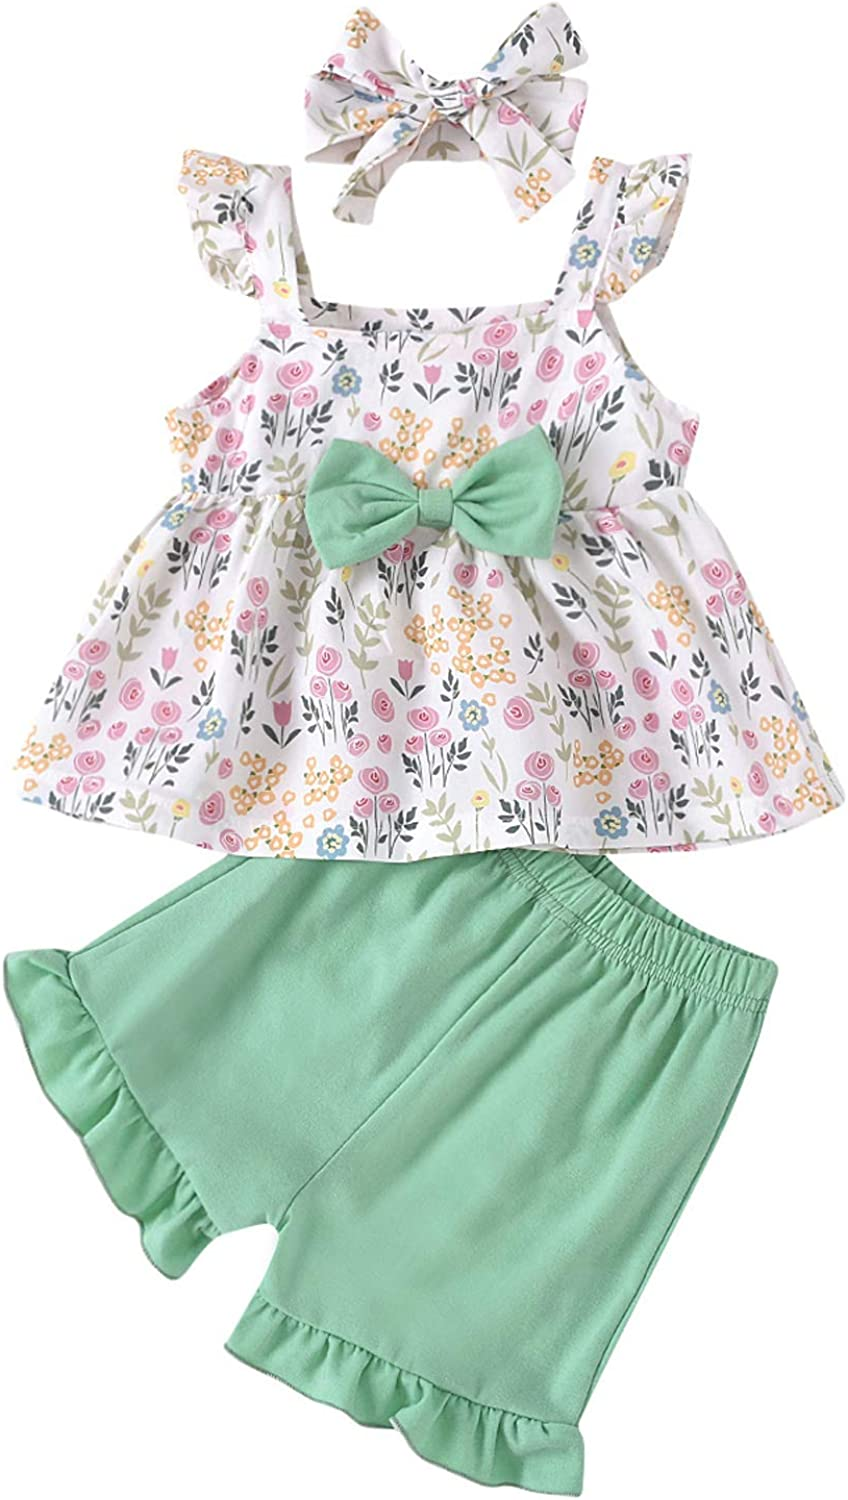 Toddler Infant Baby Girl Solid Shorts Set Cotton Linens Sleeveless Shirt Top +Short Outfit 2Pcs Summer Clothes